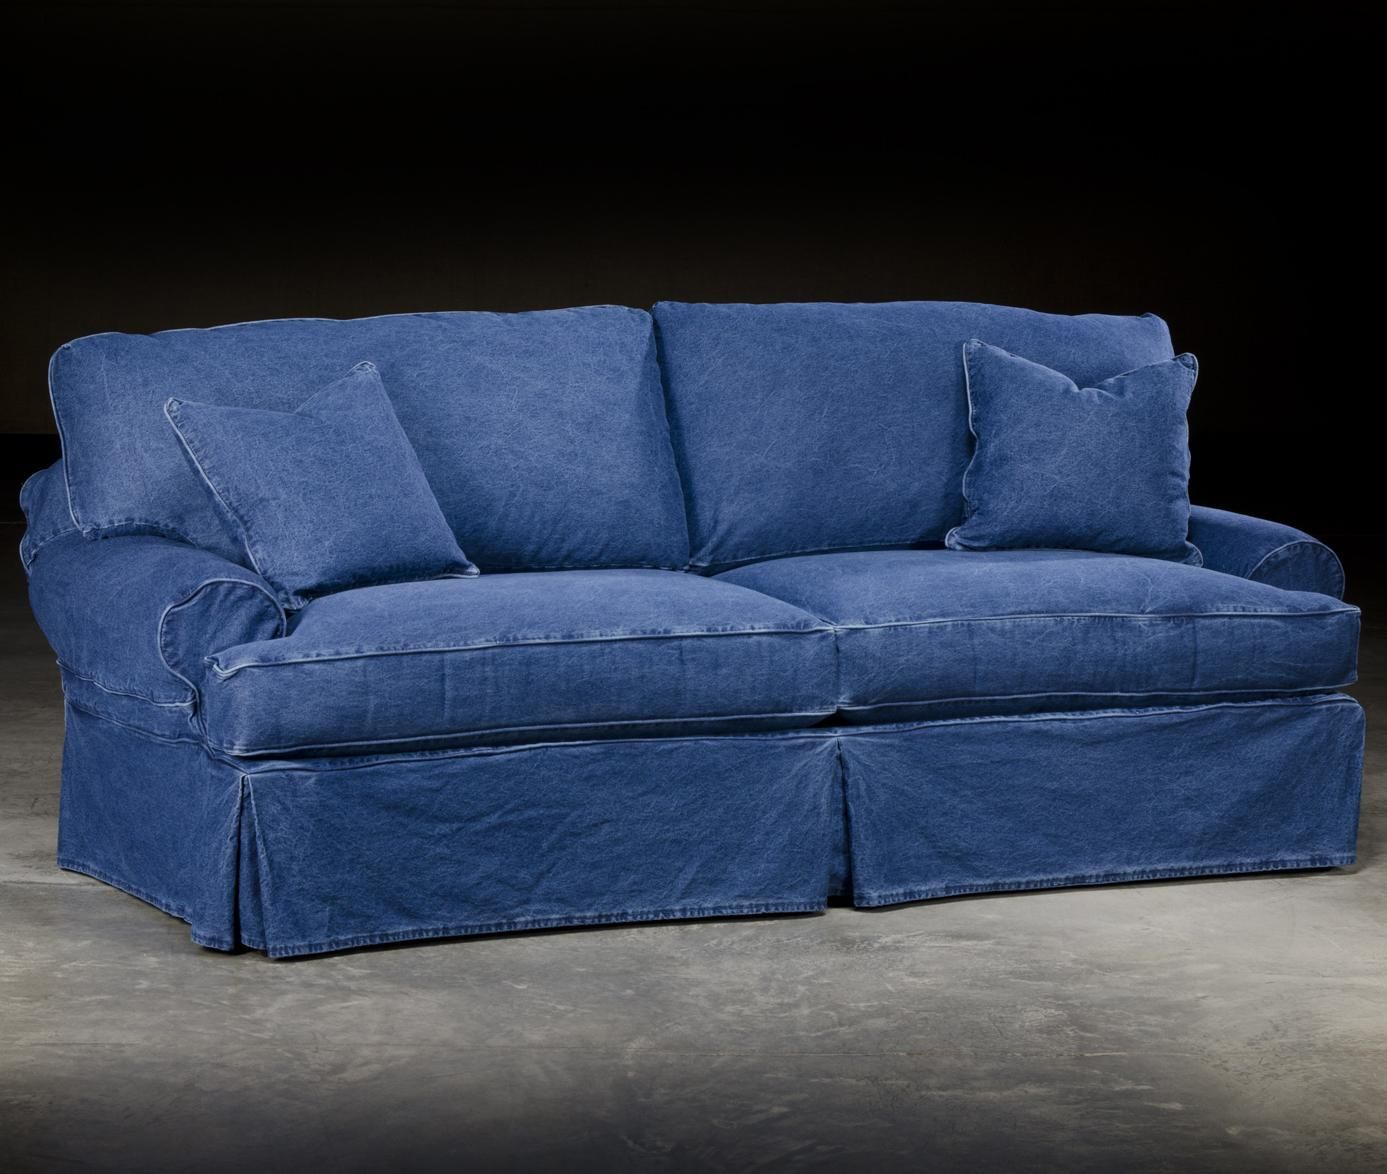 Dean Sofa By Paul Robert Have One Wore It Completely Out Want Another One Most Comfortable Piece Of Furniture Eve Denim Couch Denim Sofa Blue Couch Covers